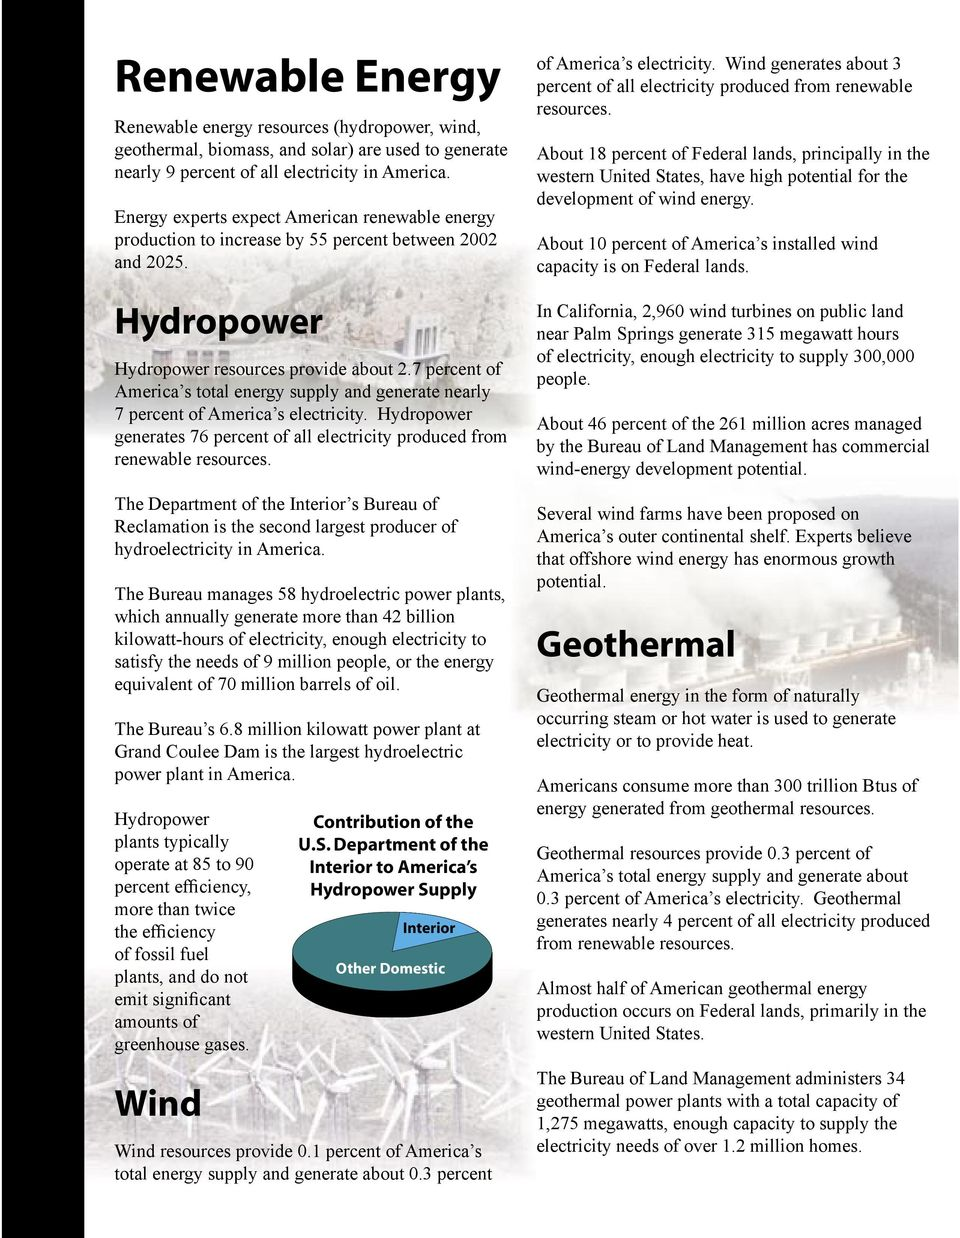 7 percent of America s total energy supply and generate nearly 7 percent of America s electricity. Hydropower generates 76 percent of all electricity produced from renewable resources.